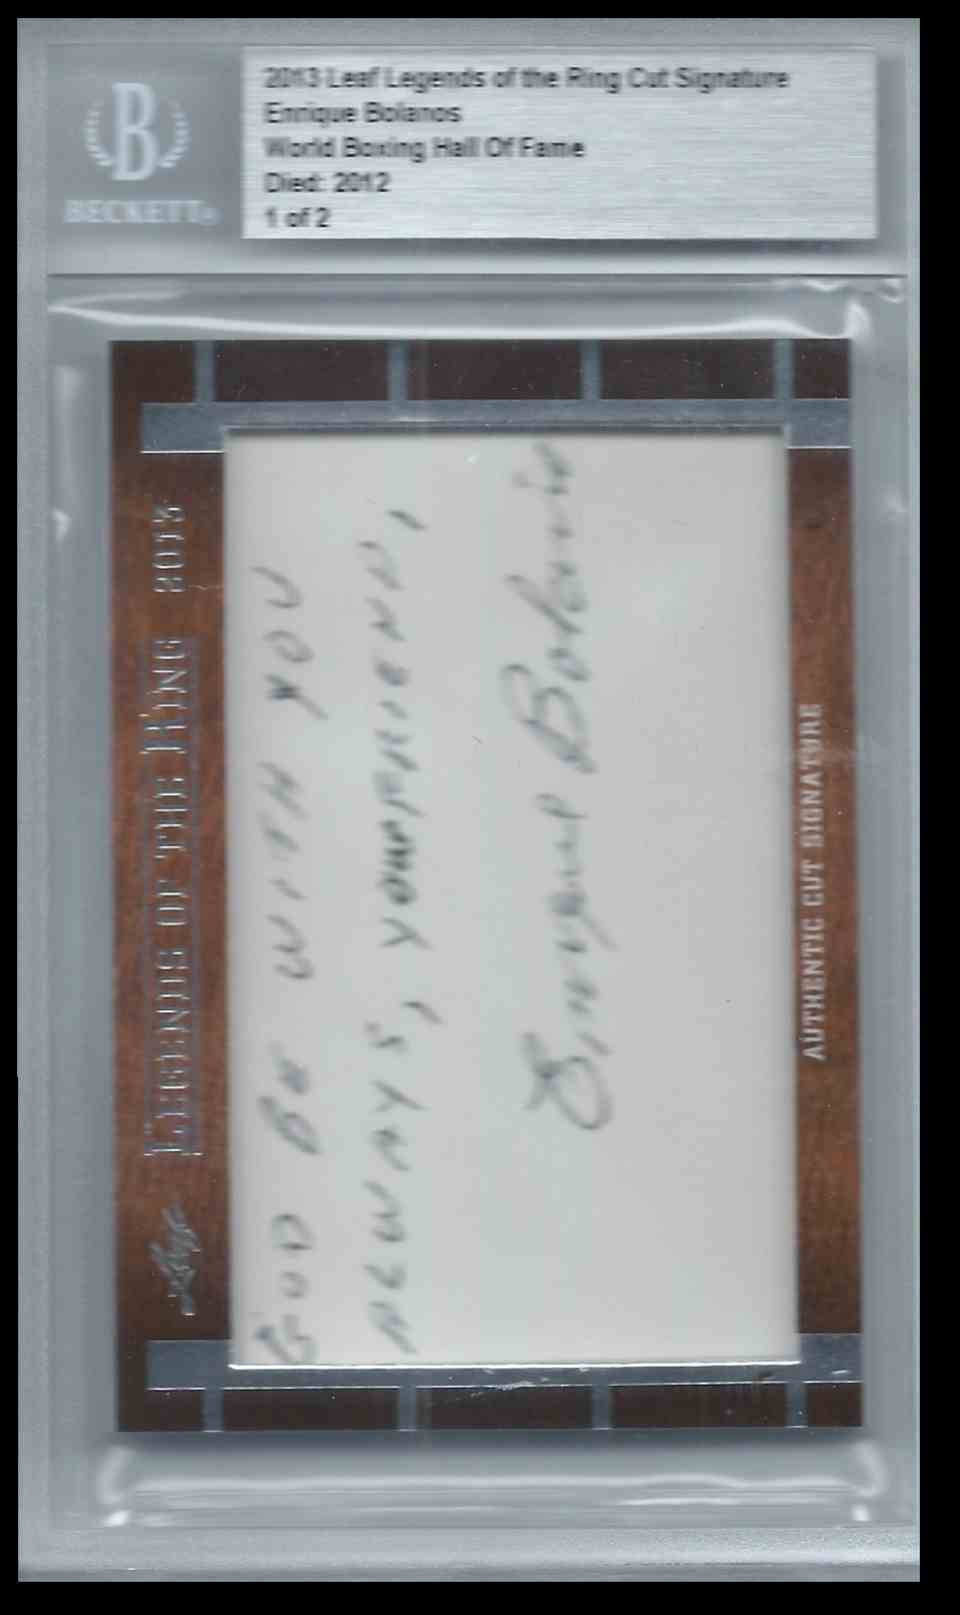 2013 Leaf Legends Of The Ring Cut Signature Edition Boxing Hall Of Fame Enrique Bolanos #CUTEB card front image